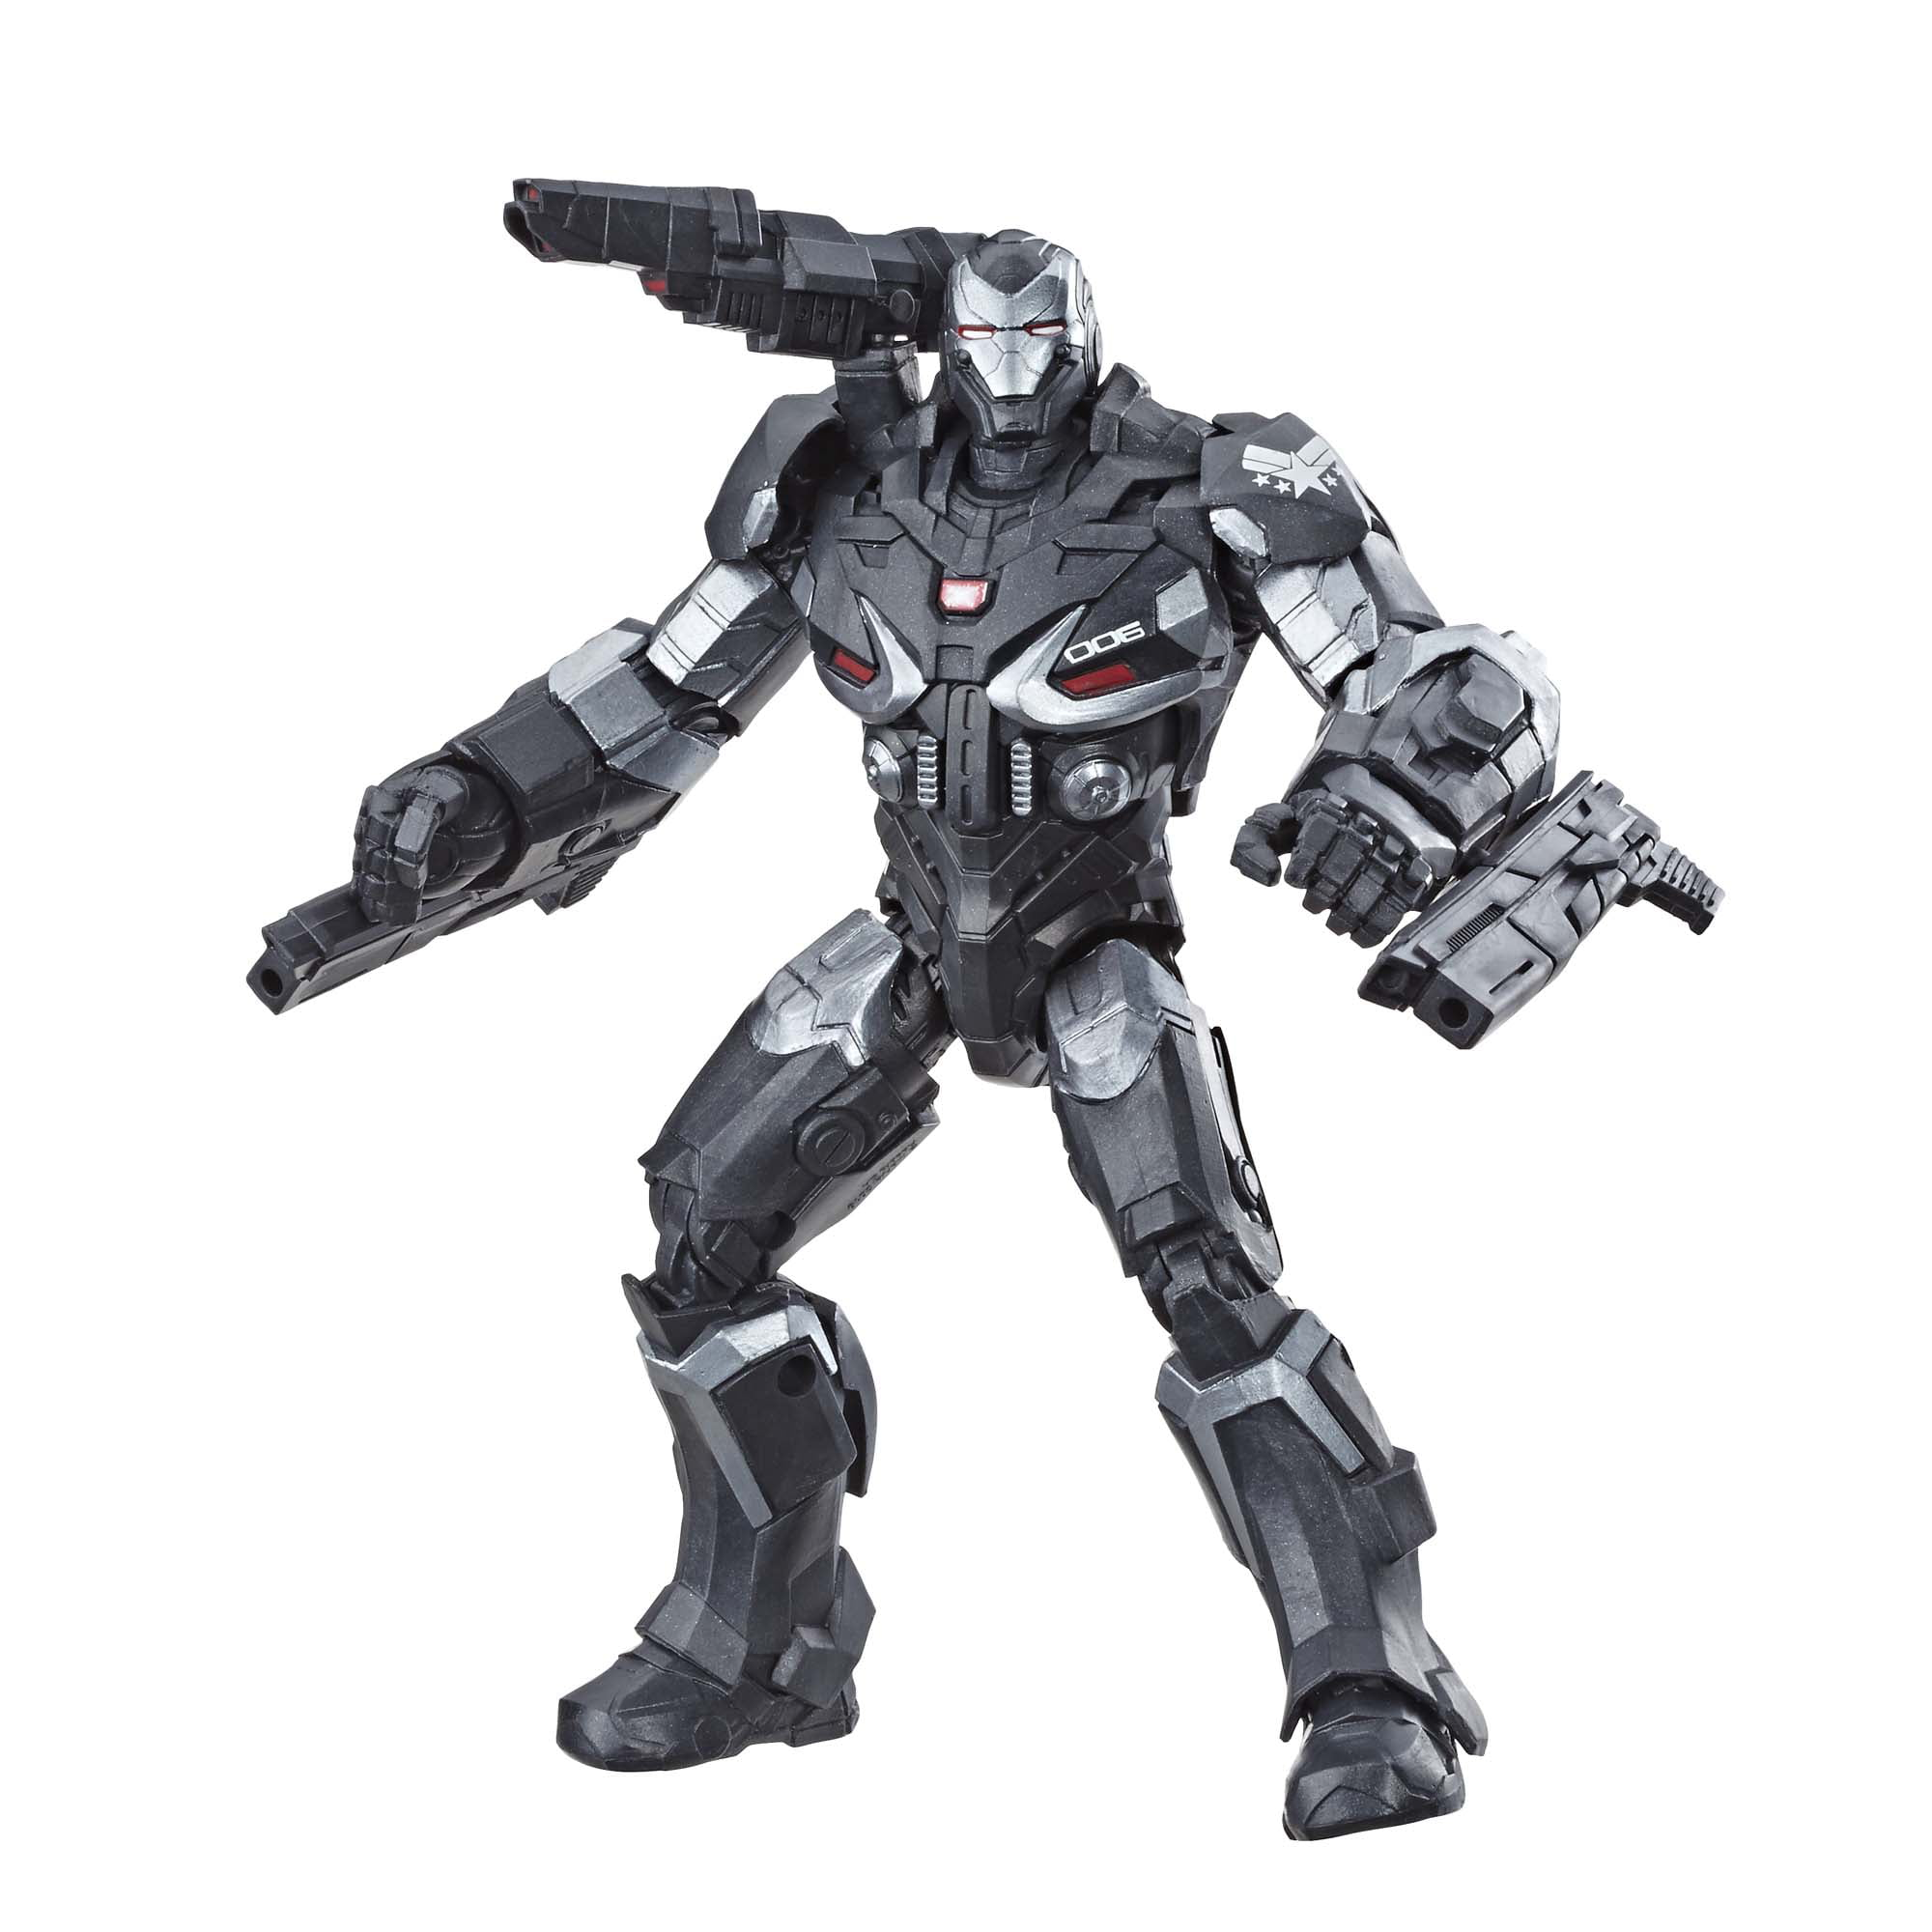 Marvel Legends Series Avengers 6-inch War Machine Figure